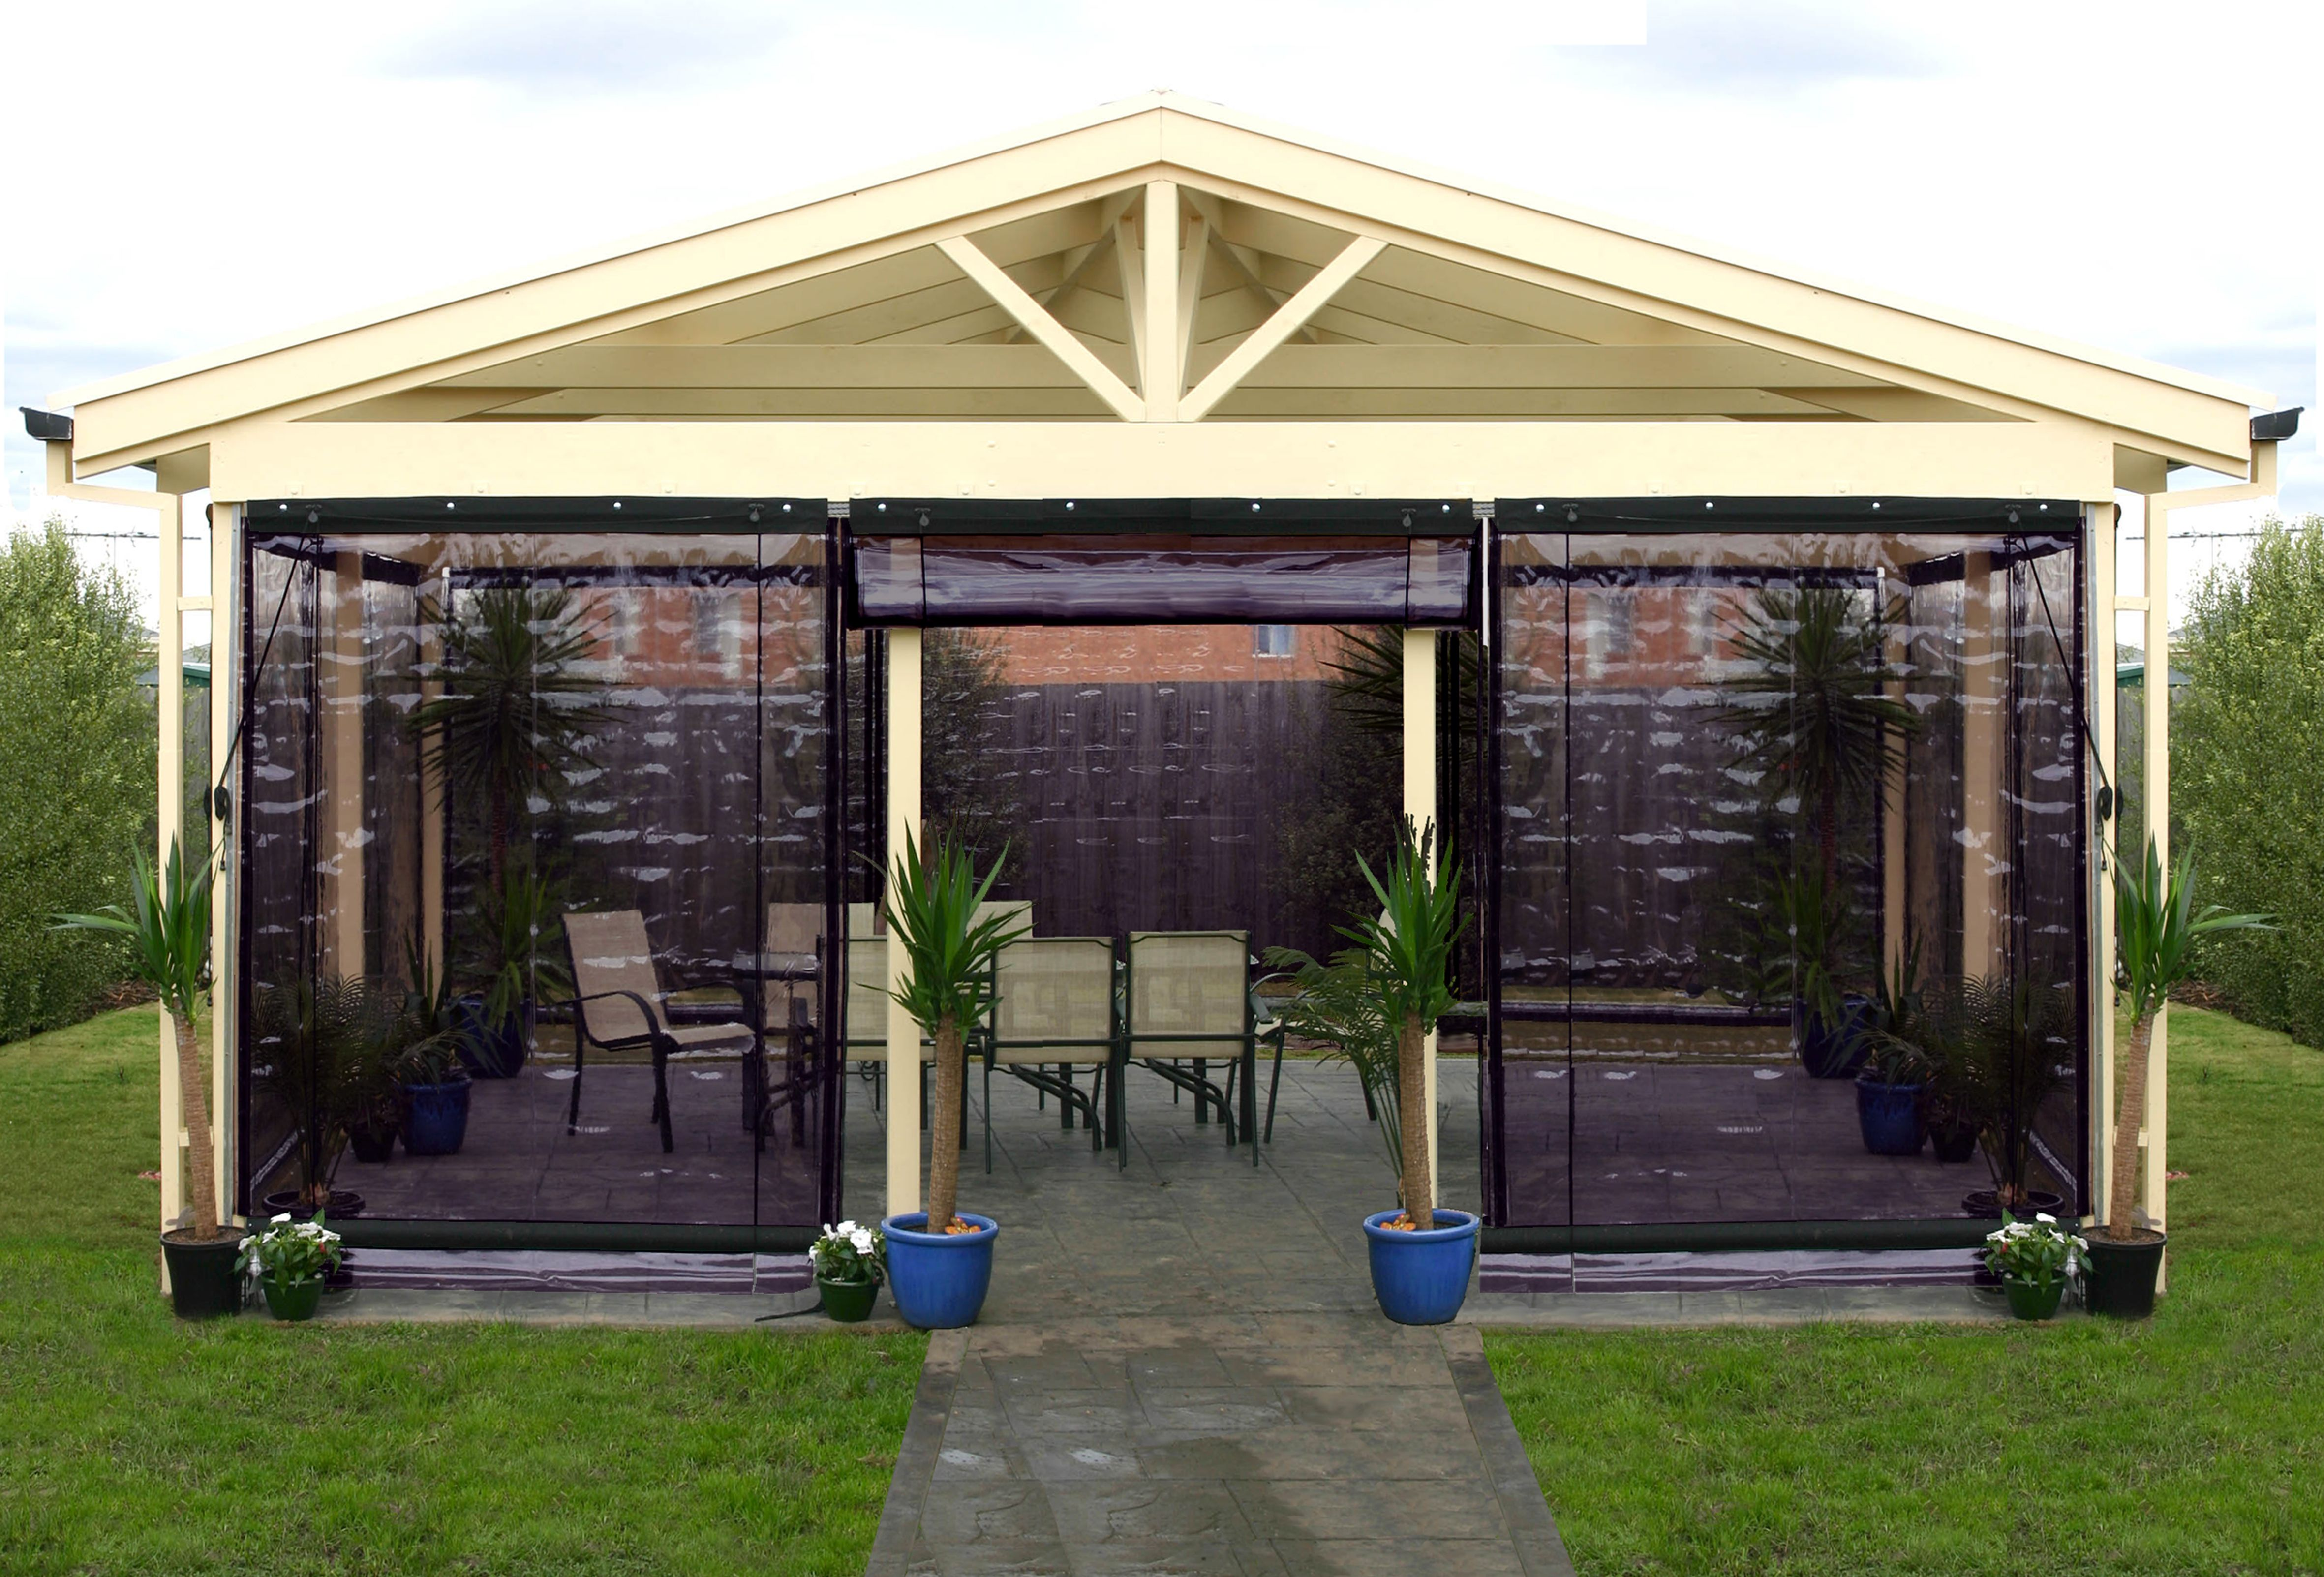 Blind Outdoor Bistro Shp 210x240cm Cha Pvc Blk Bi2124ch Bunnings Warehouse Outdoor Blinds Diy Blinds Cafe Blinds